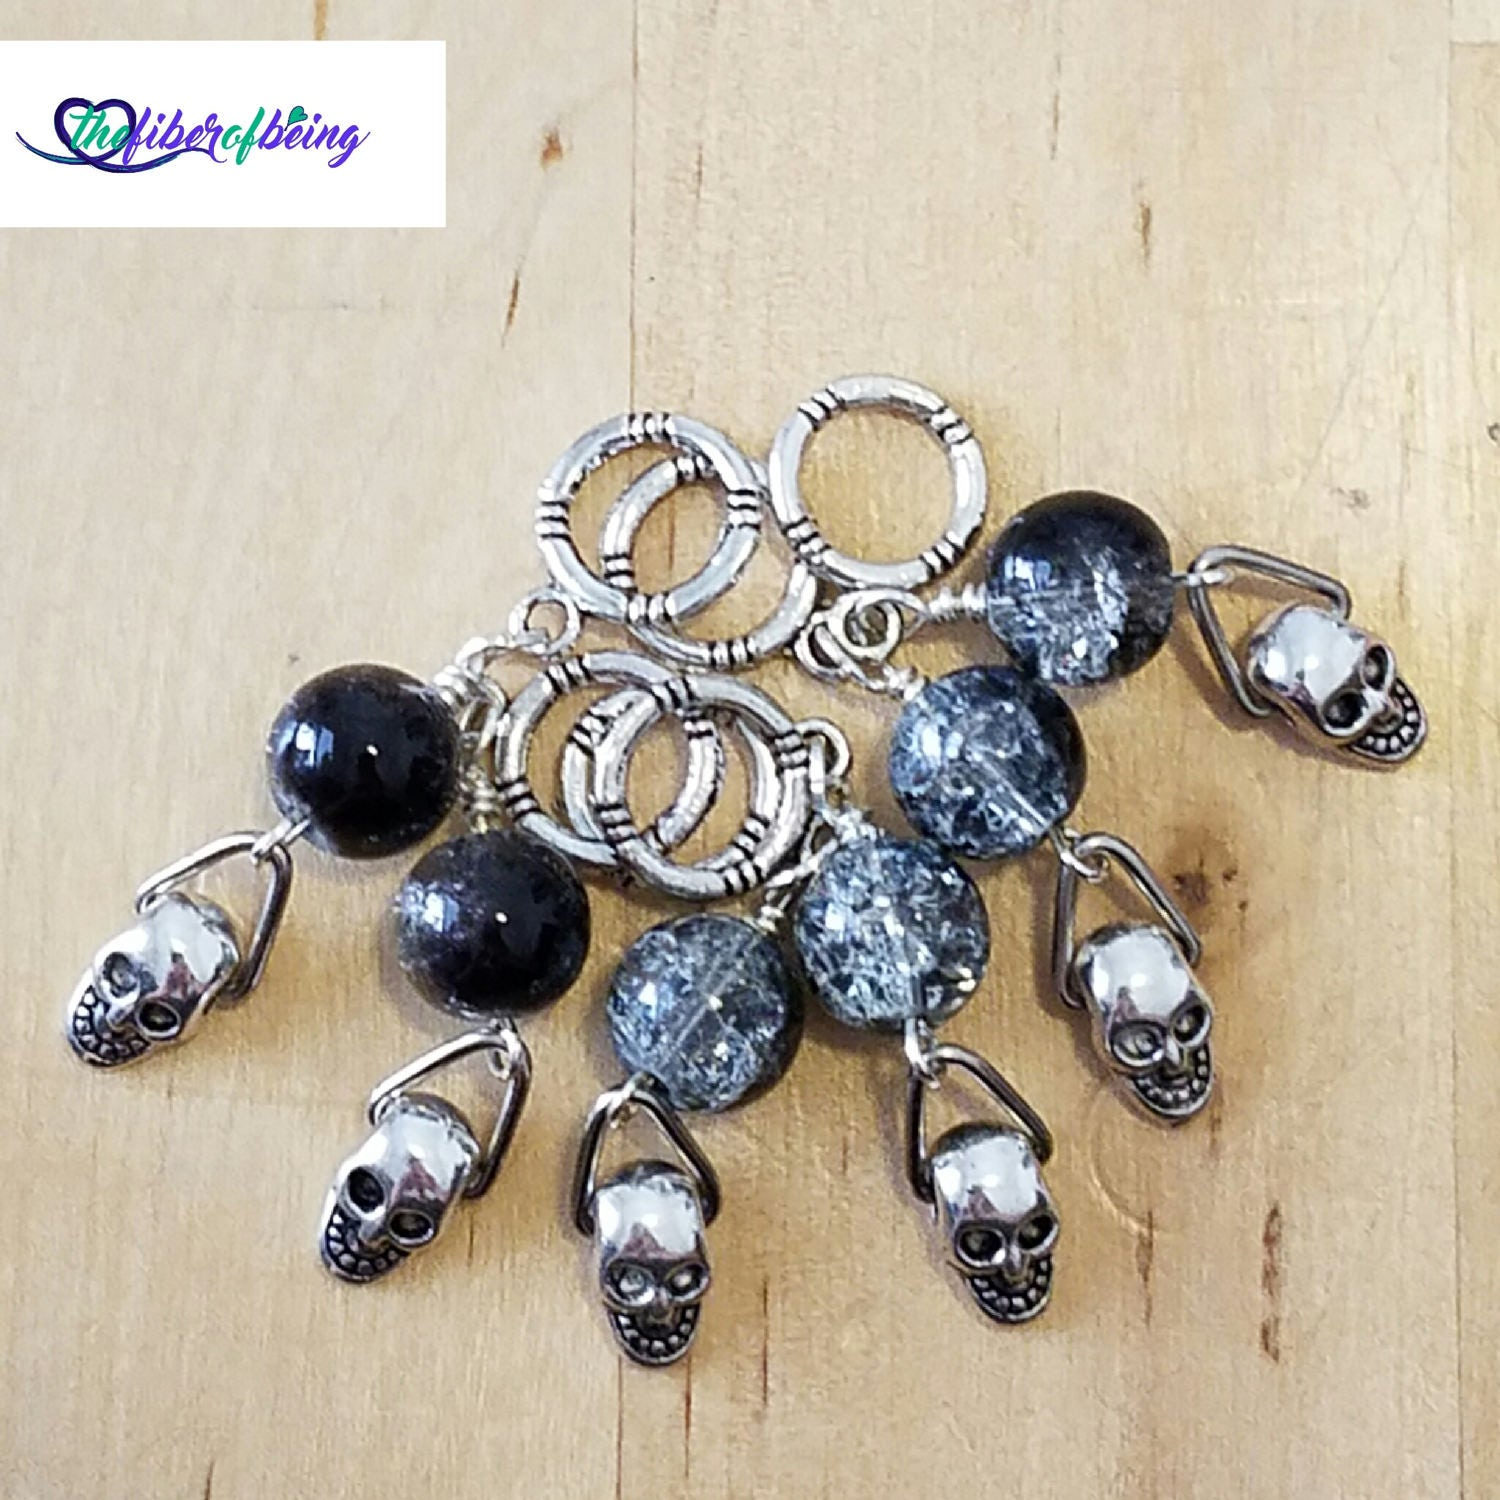 Knitting Markers Etsy : Skull knit stitch markers knitters gifts from